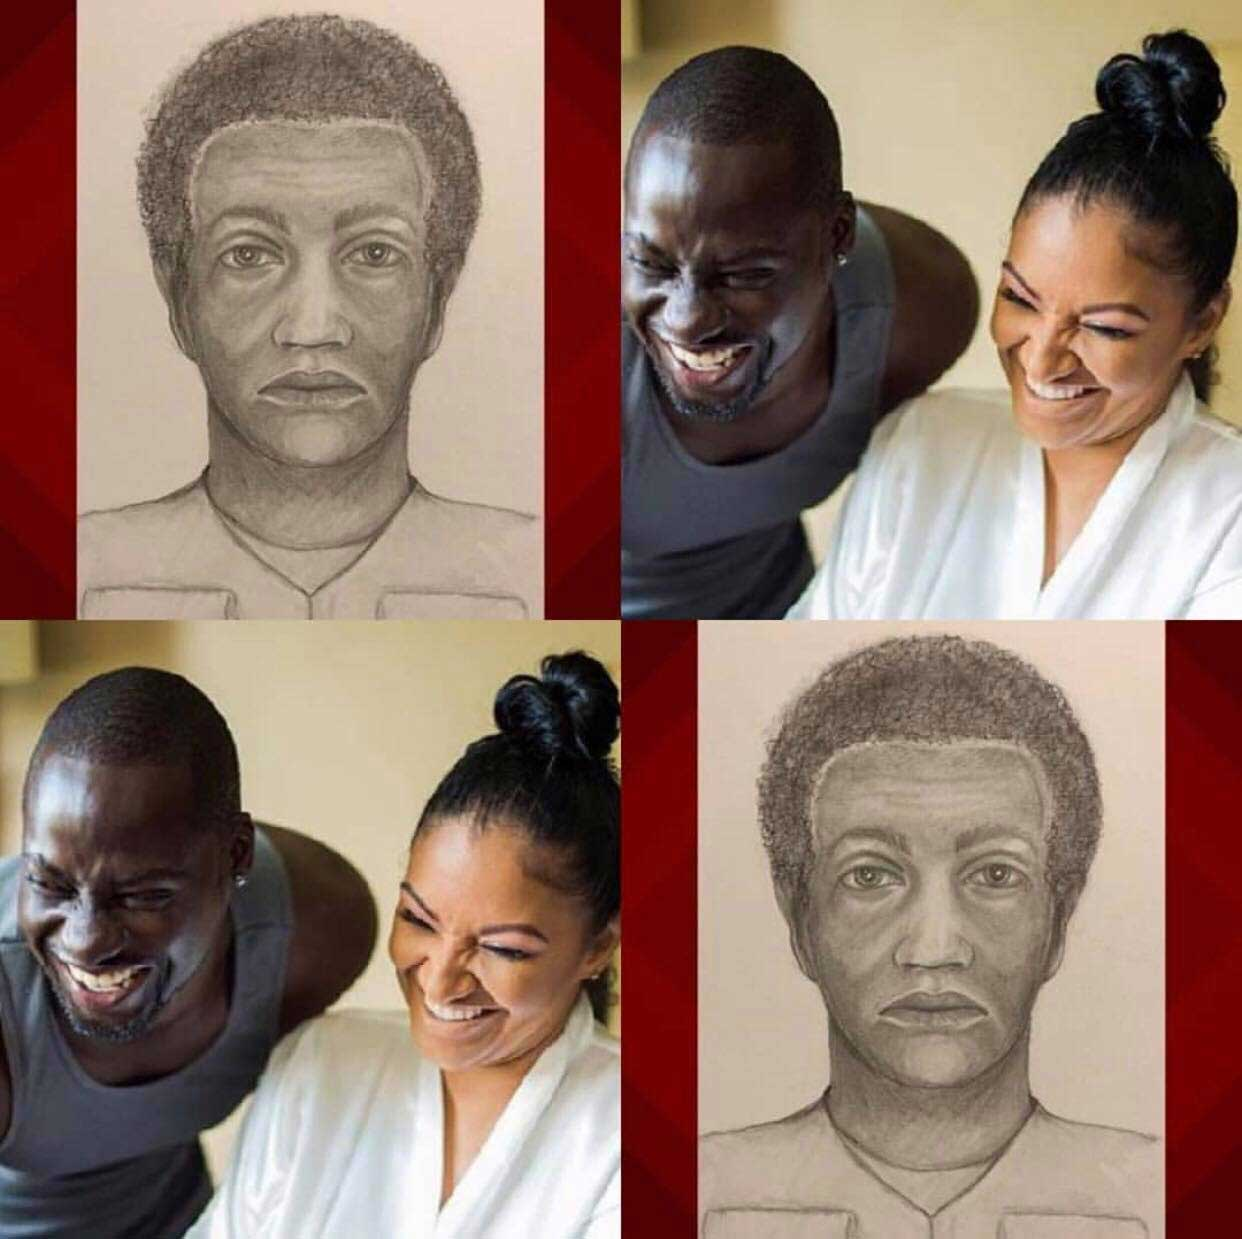 sketch man killed Chris Attoh wife - Maryland police release sketch of the man who killed Chris Attoh's wife